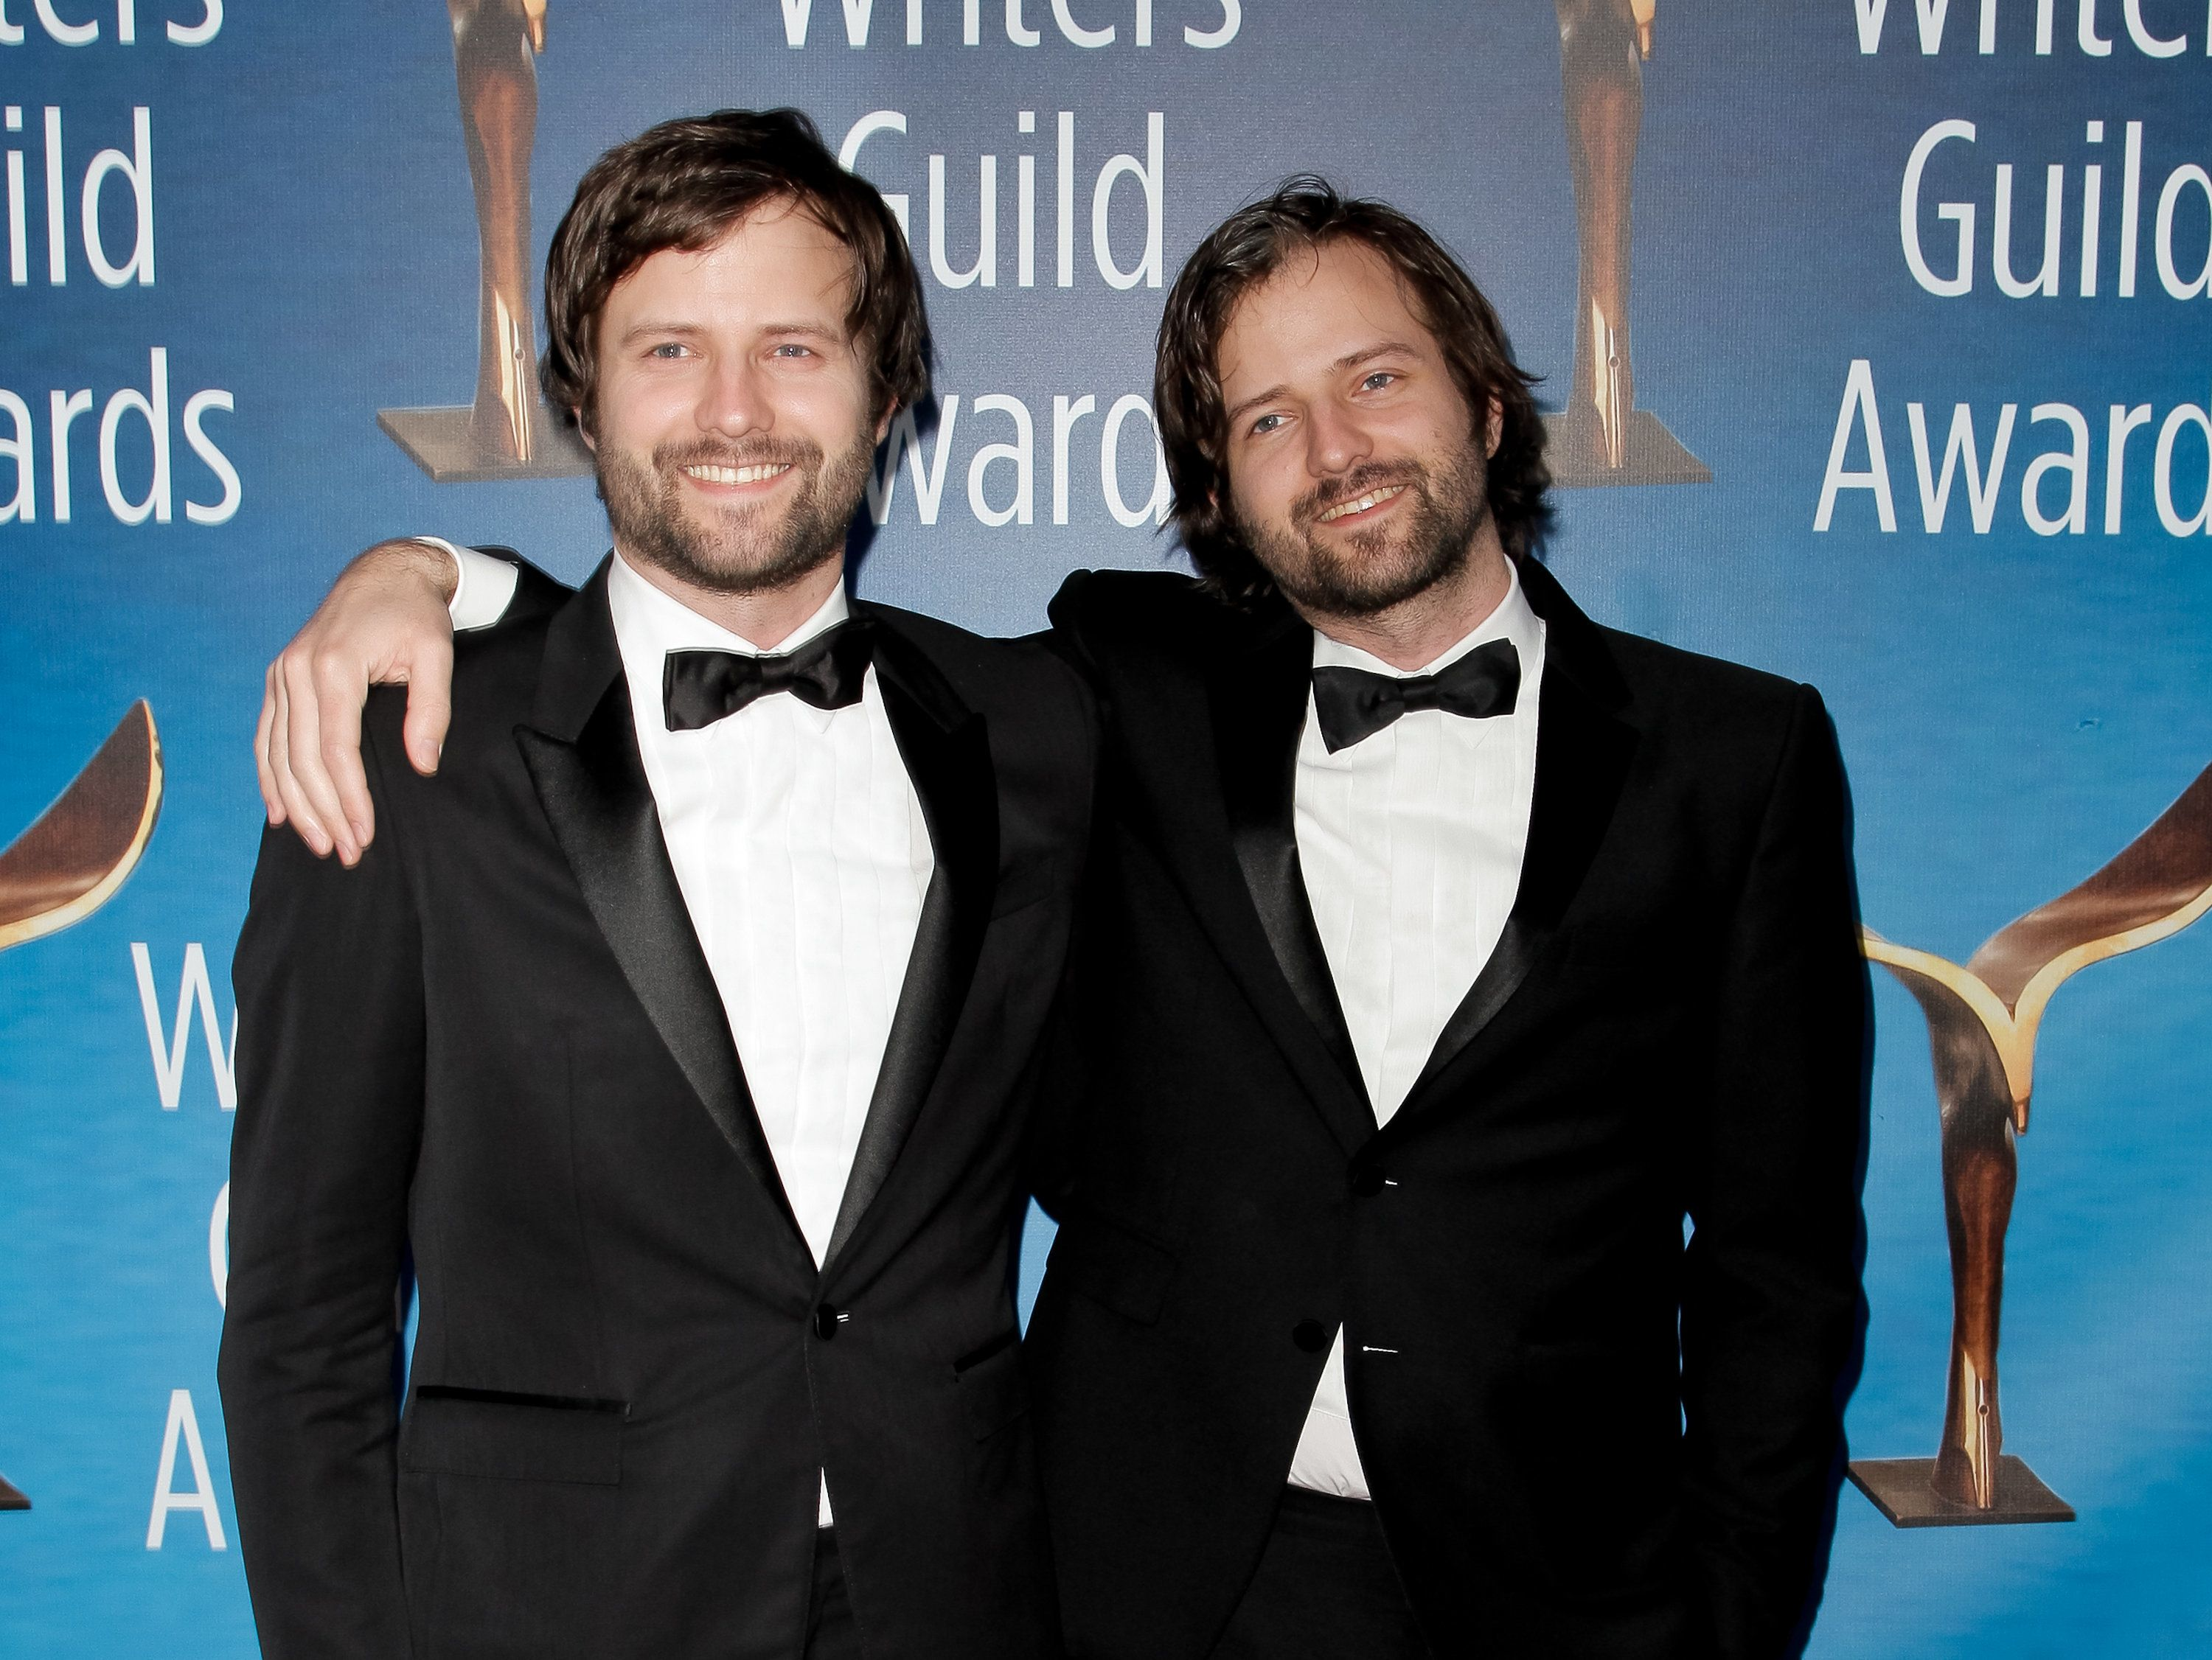 BEVERLY HILLS, CA - FEBRUARY 19:  The Duffer Brothers, Matt Duffer and Ross Duffer attend the 2017 Writers Guild Awards L.A. Ceremony at The Beverly Hilton Hotel on February 19, 2017 in Beverly Hills, California.  (Photo by Tibrina Hobson/Getty Images)